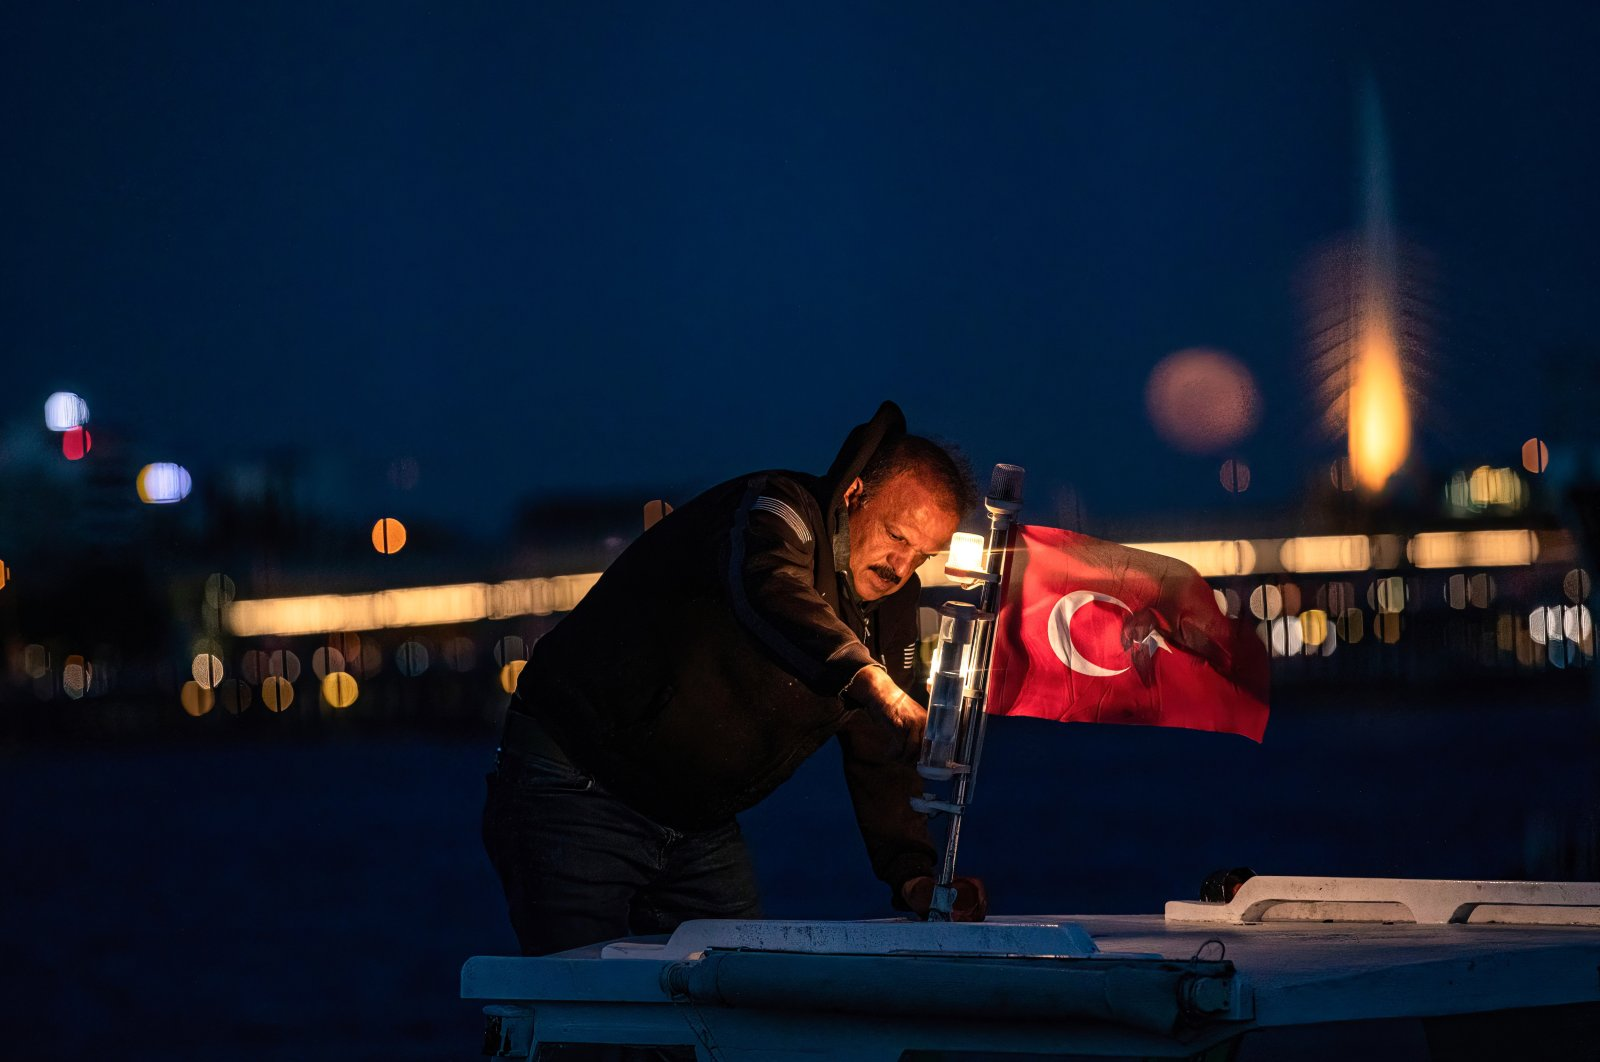 A man holds a Turkish flag on his boat on the Golden Horn coast of Istanbul, Turkey, May 26, 2021. (Photo by Getty Images)